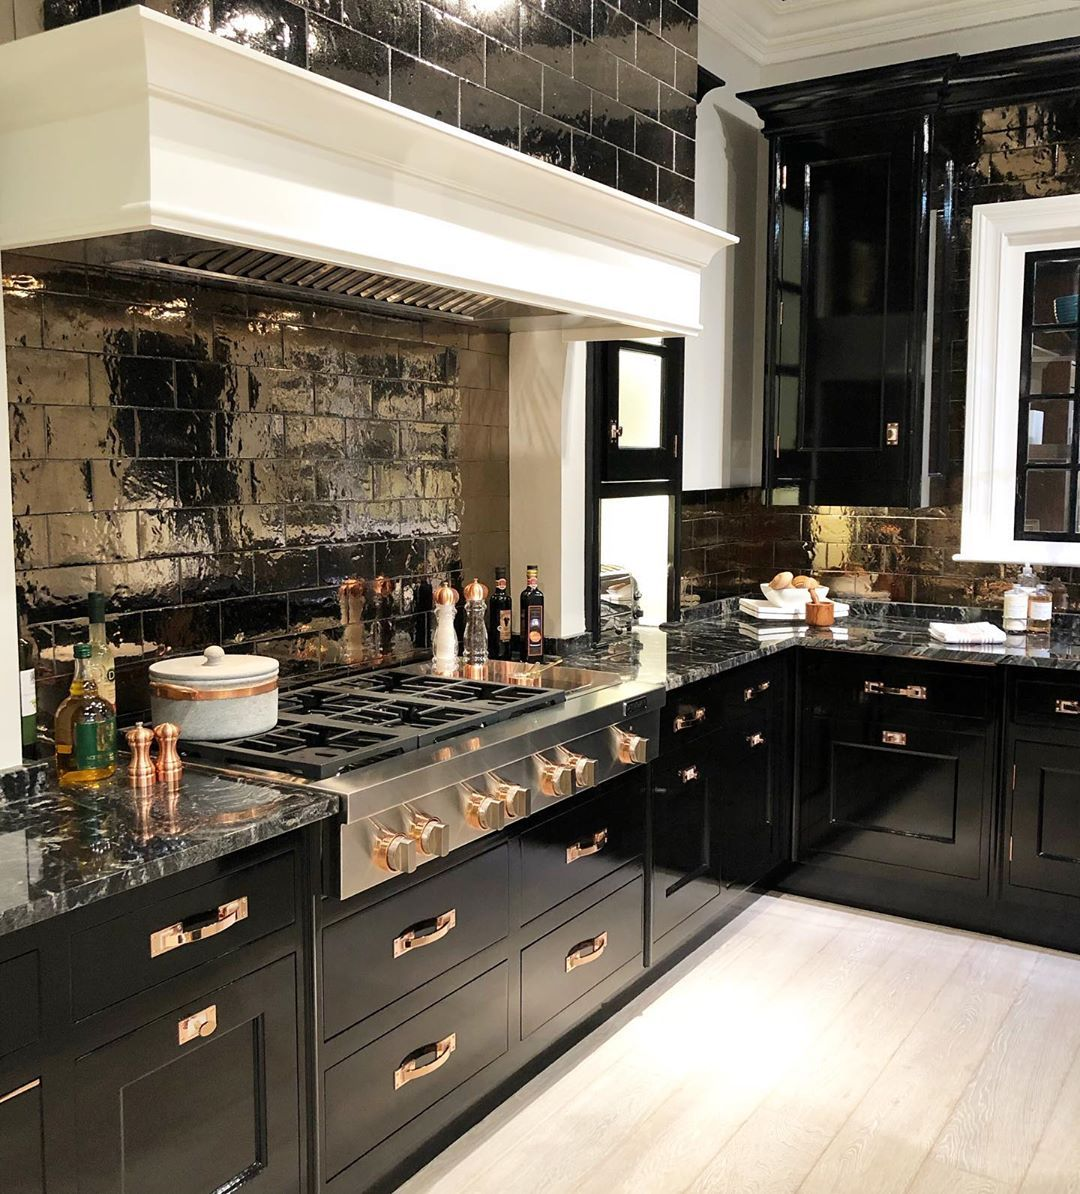 traditional with a modern touch home homeideas kitchen kitchendesign customcabinetry on kitchen remodel gold hardware id=97099